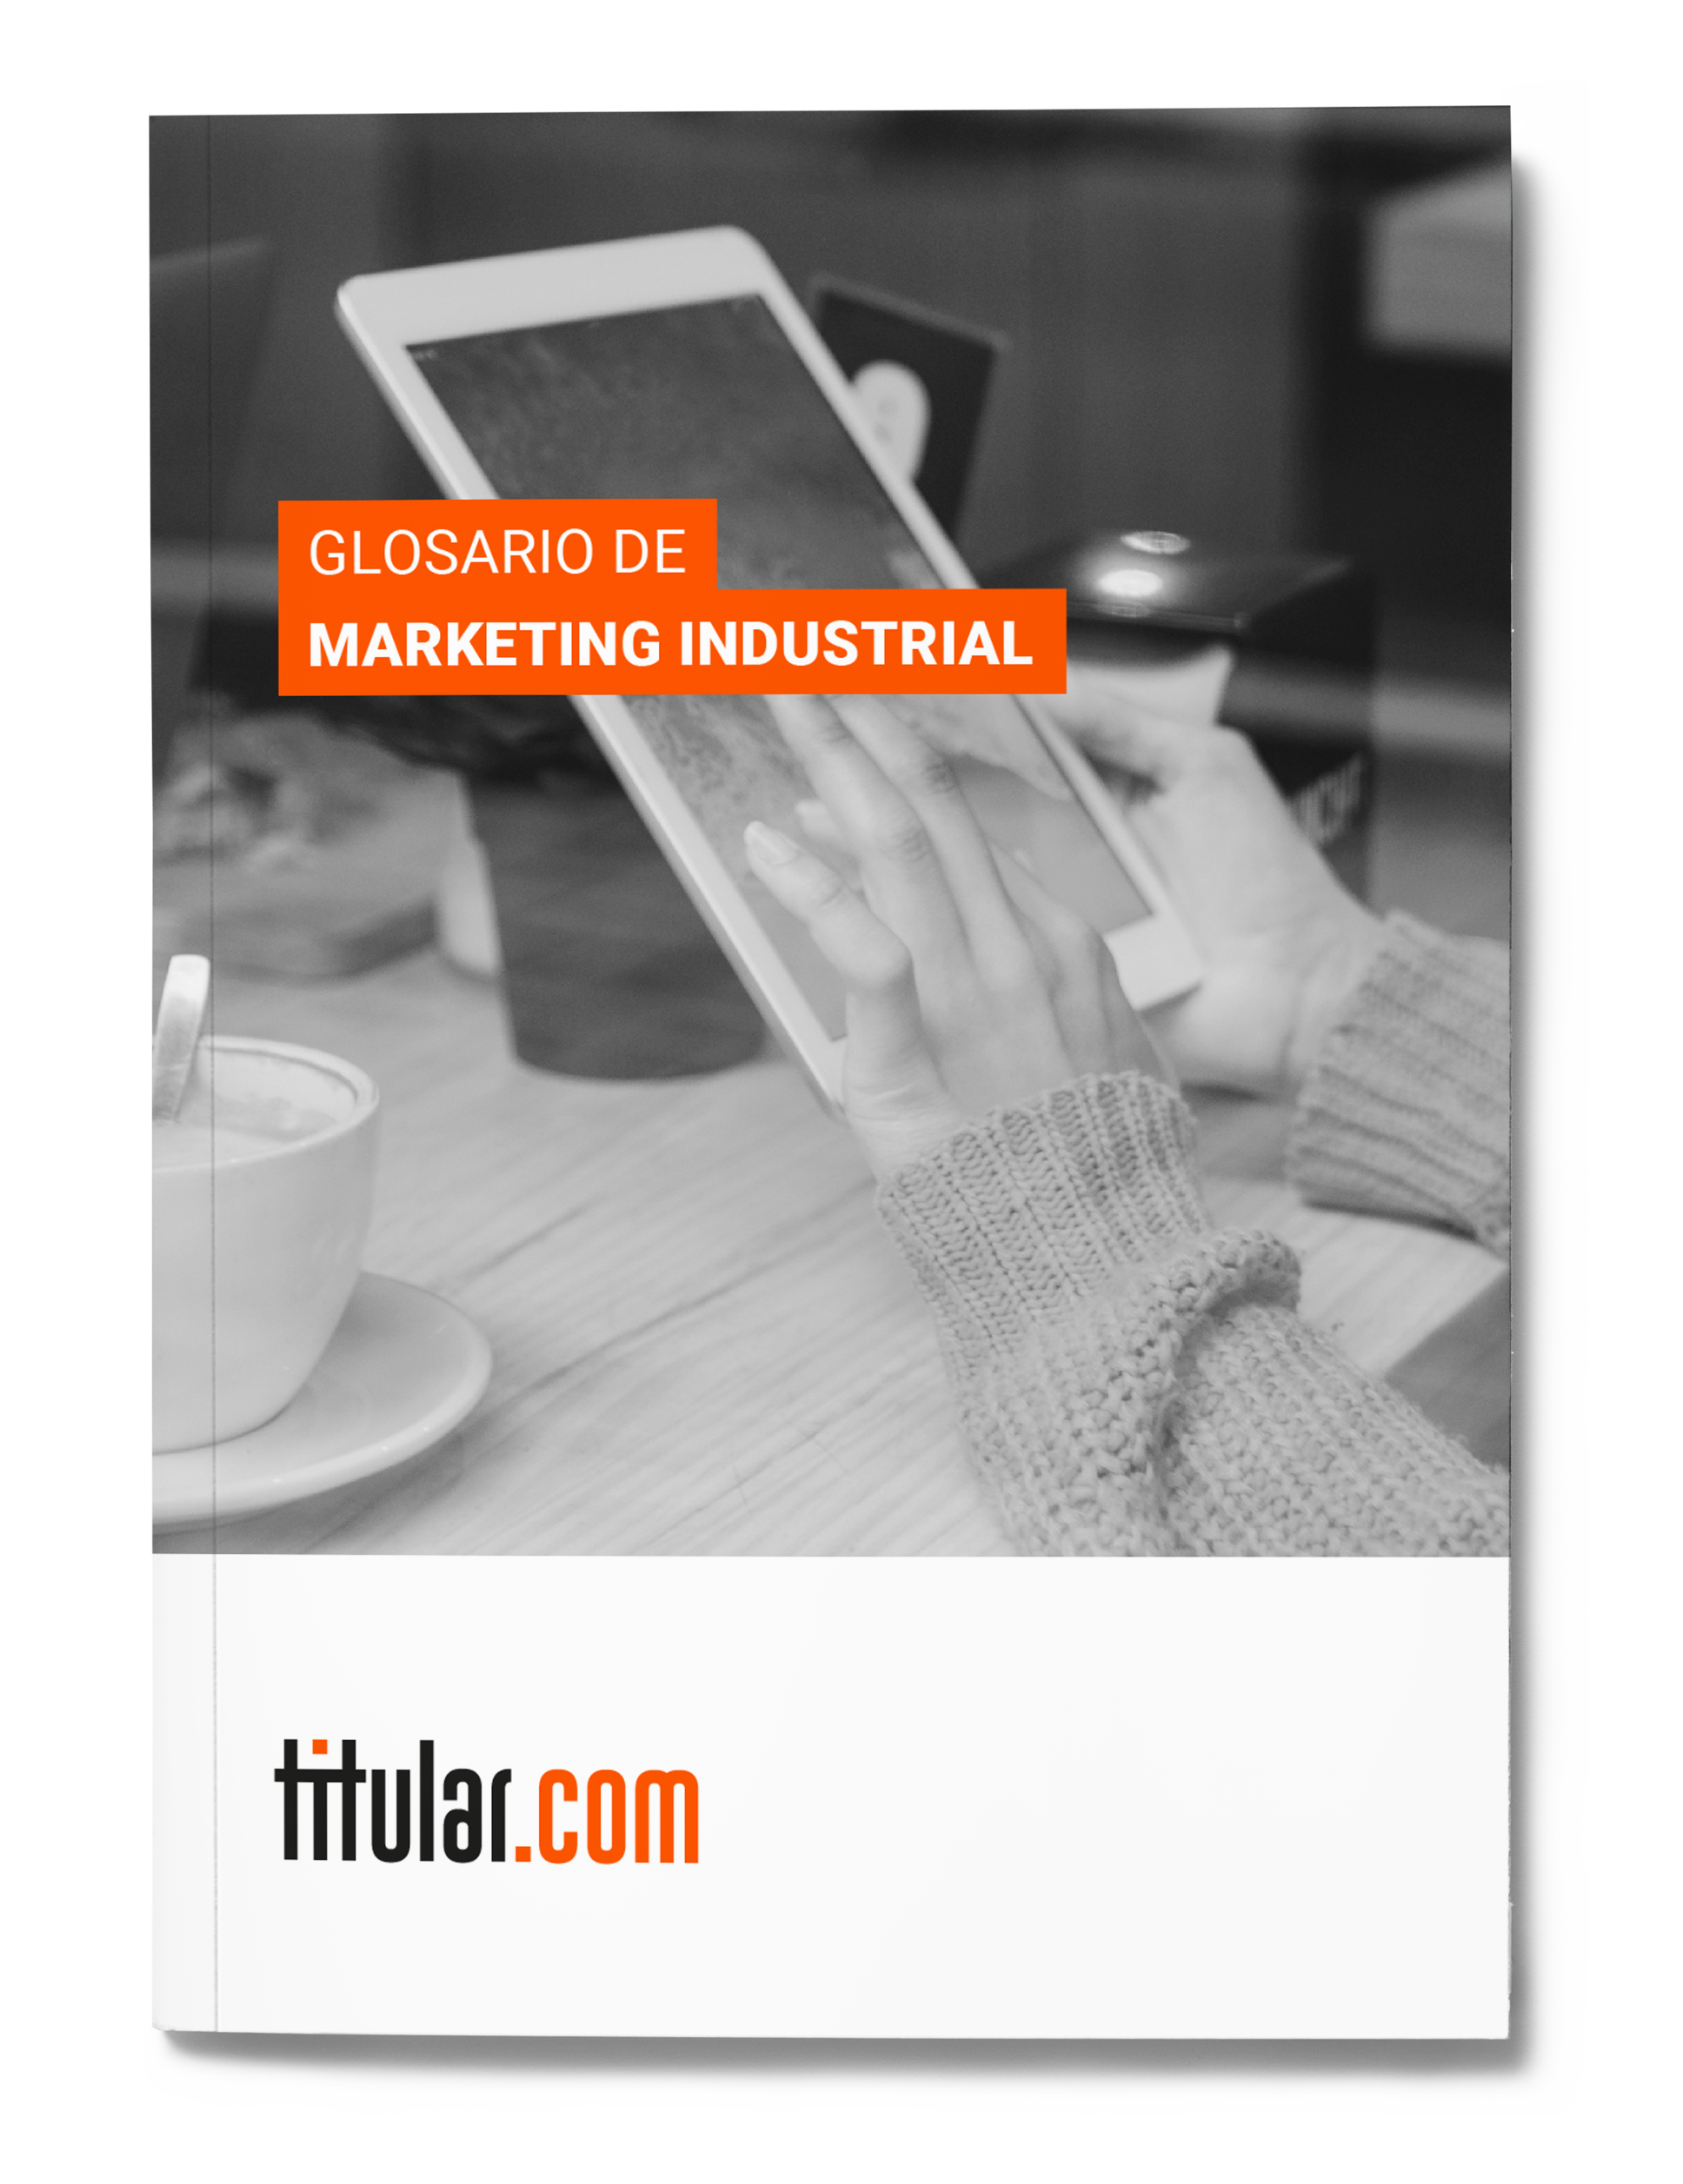 Glosario de marketing industrial